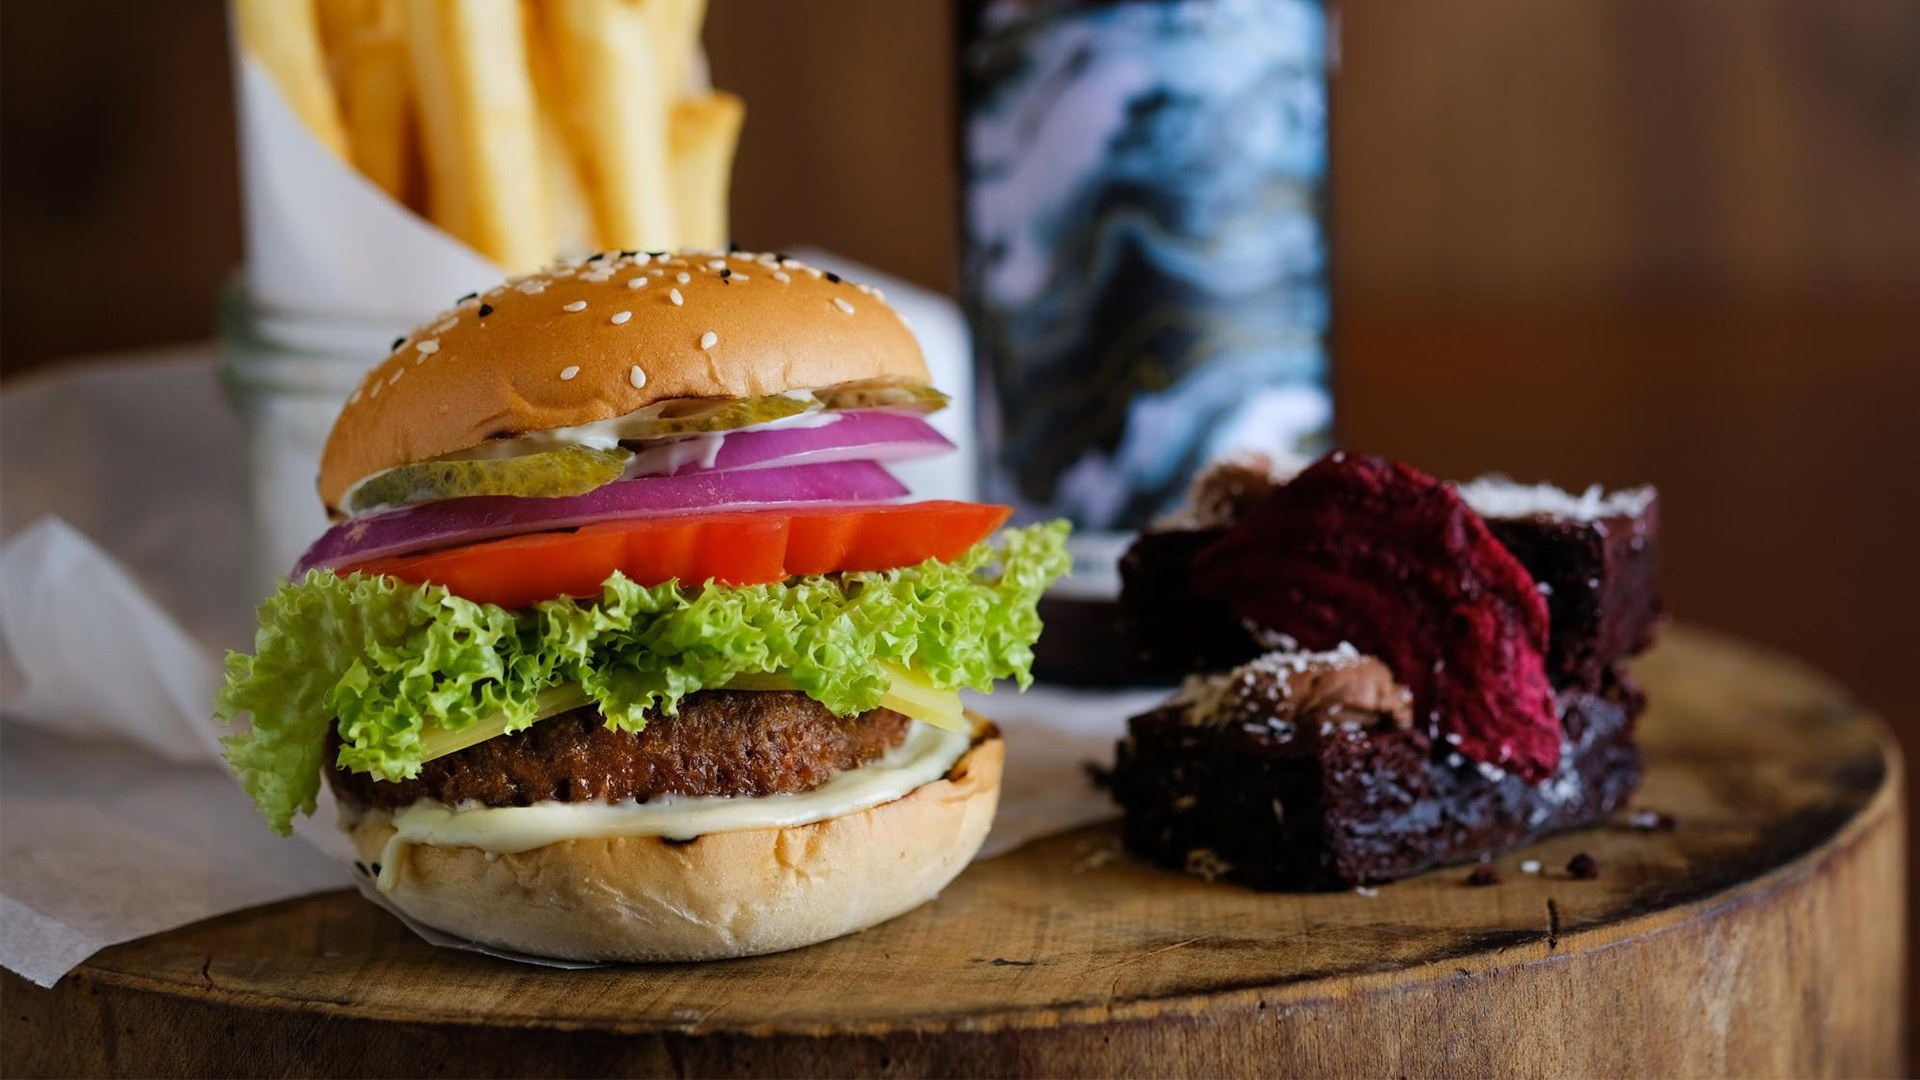 7 Places In Singapore Where You Can Be Vegetarian And Still Have a Burger